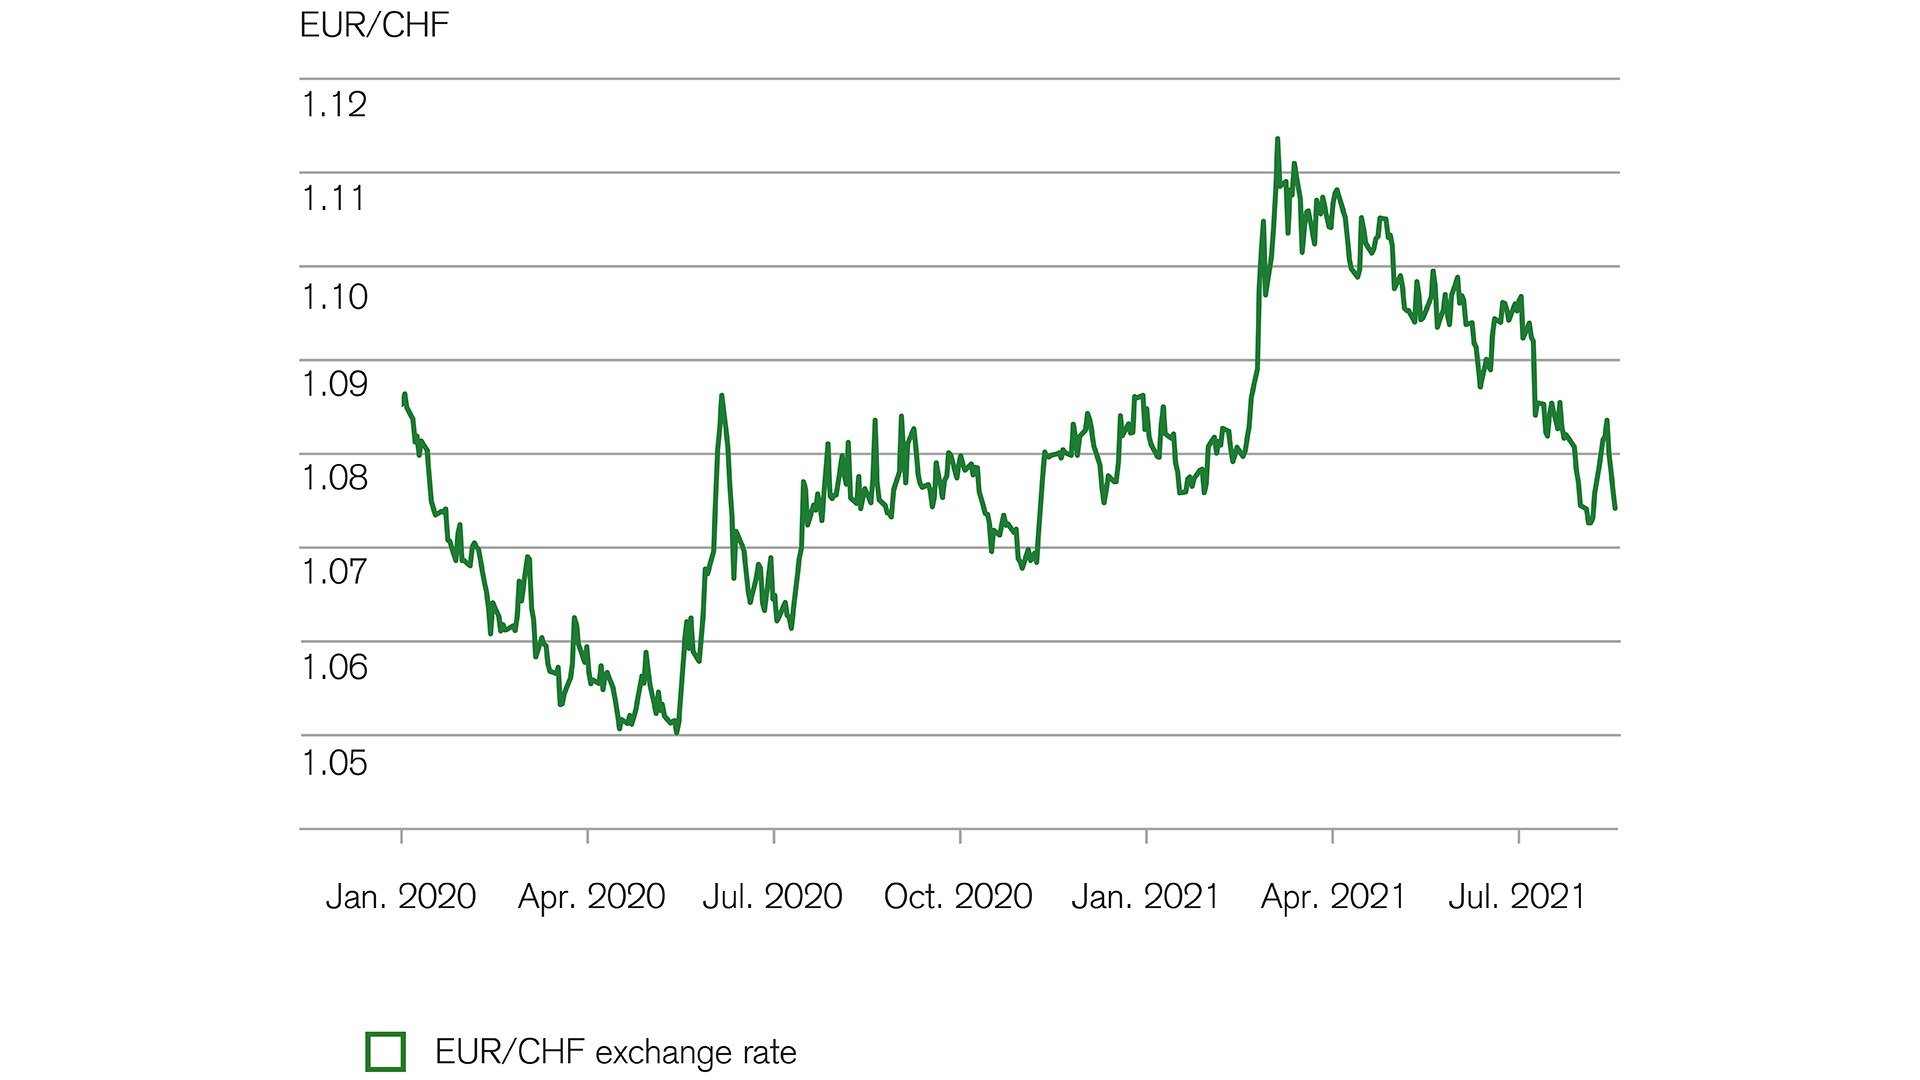 Currencies: The euro remains low